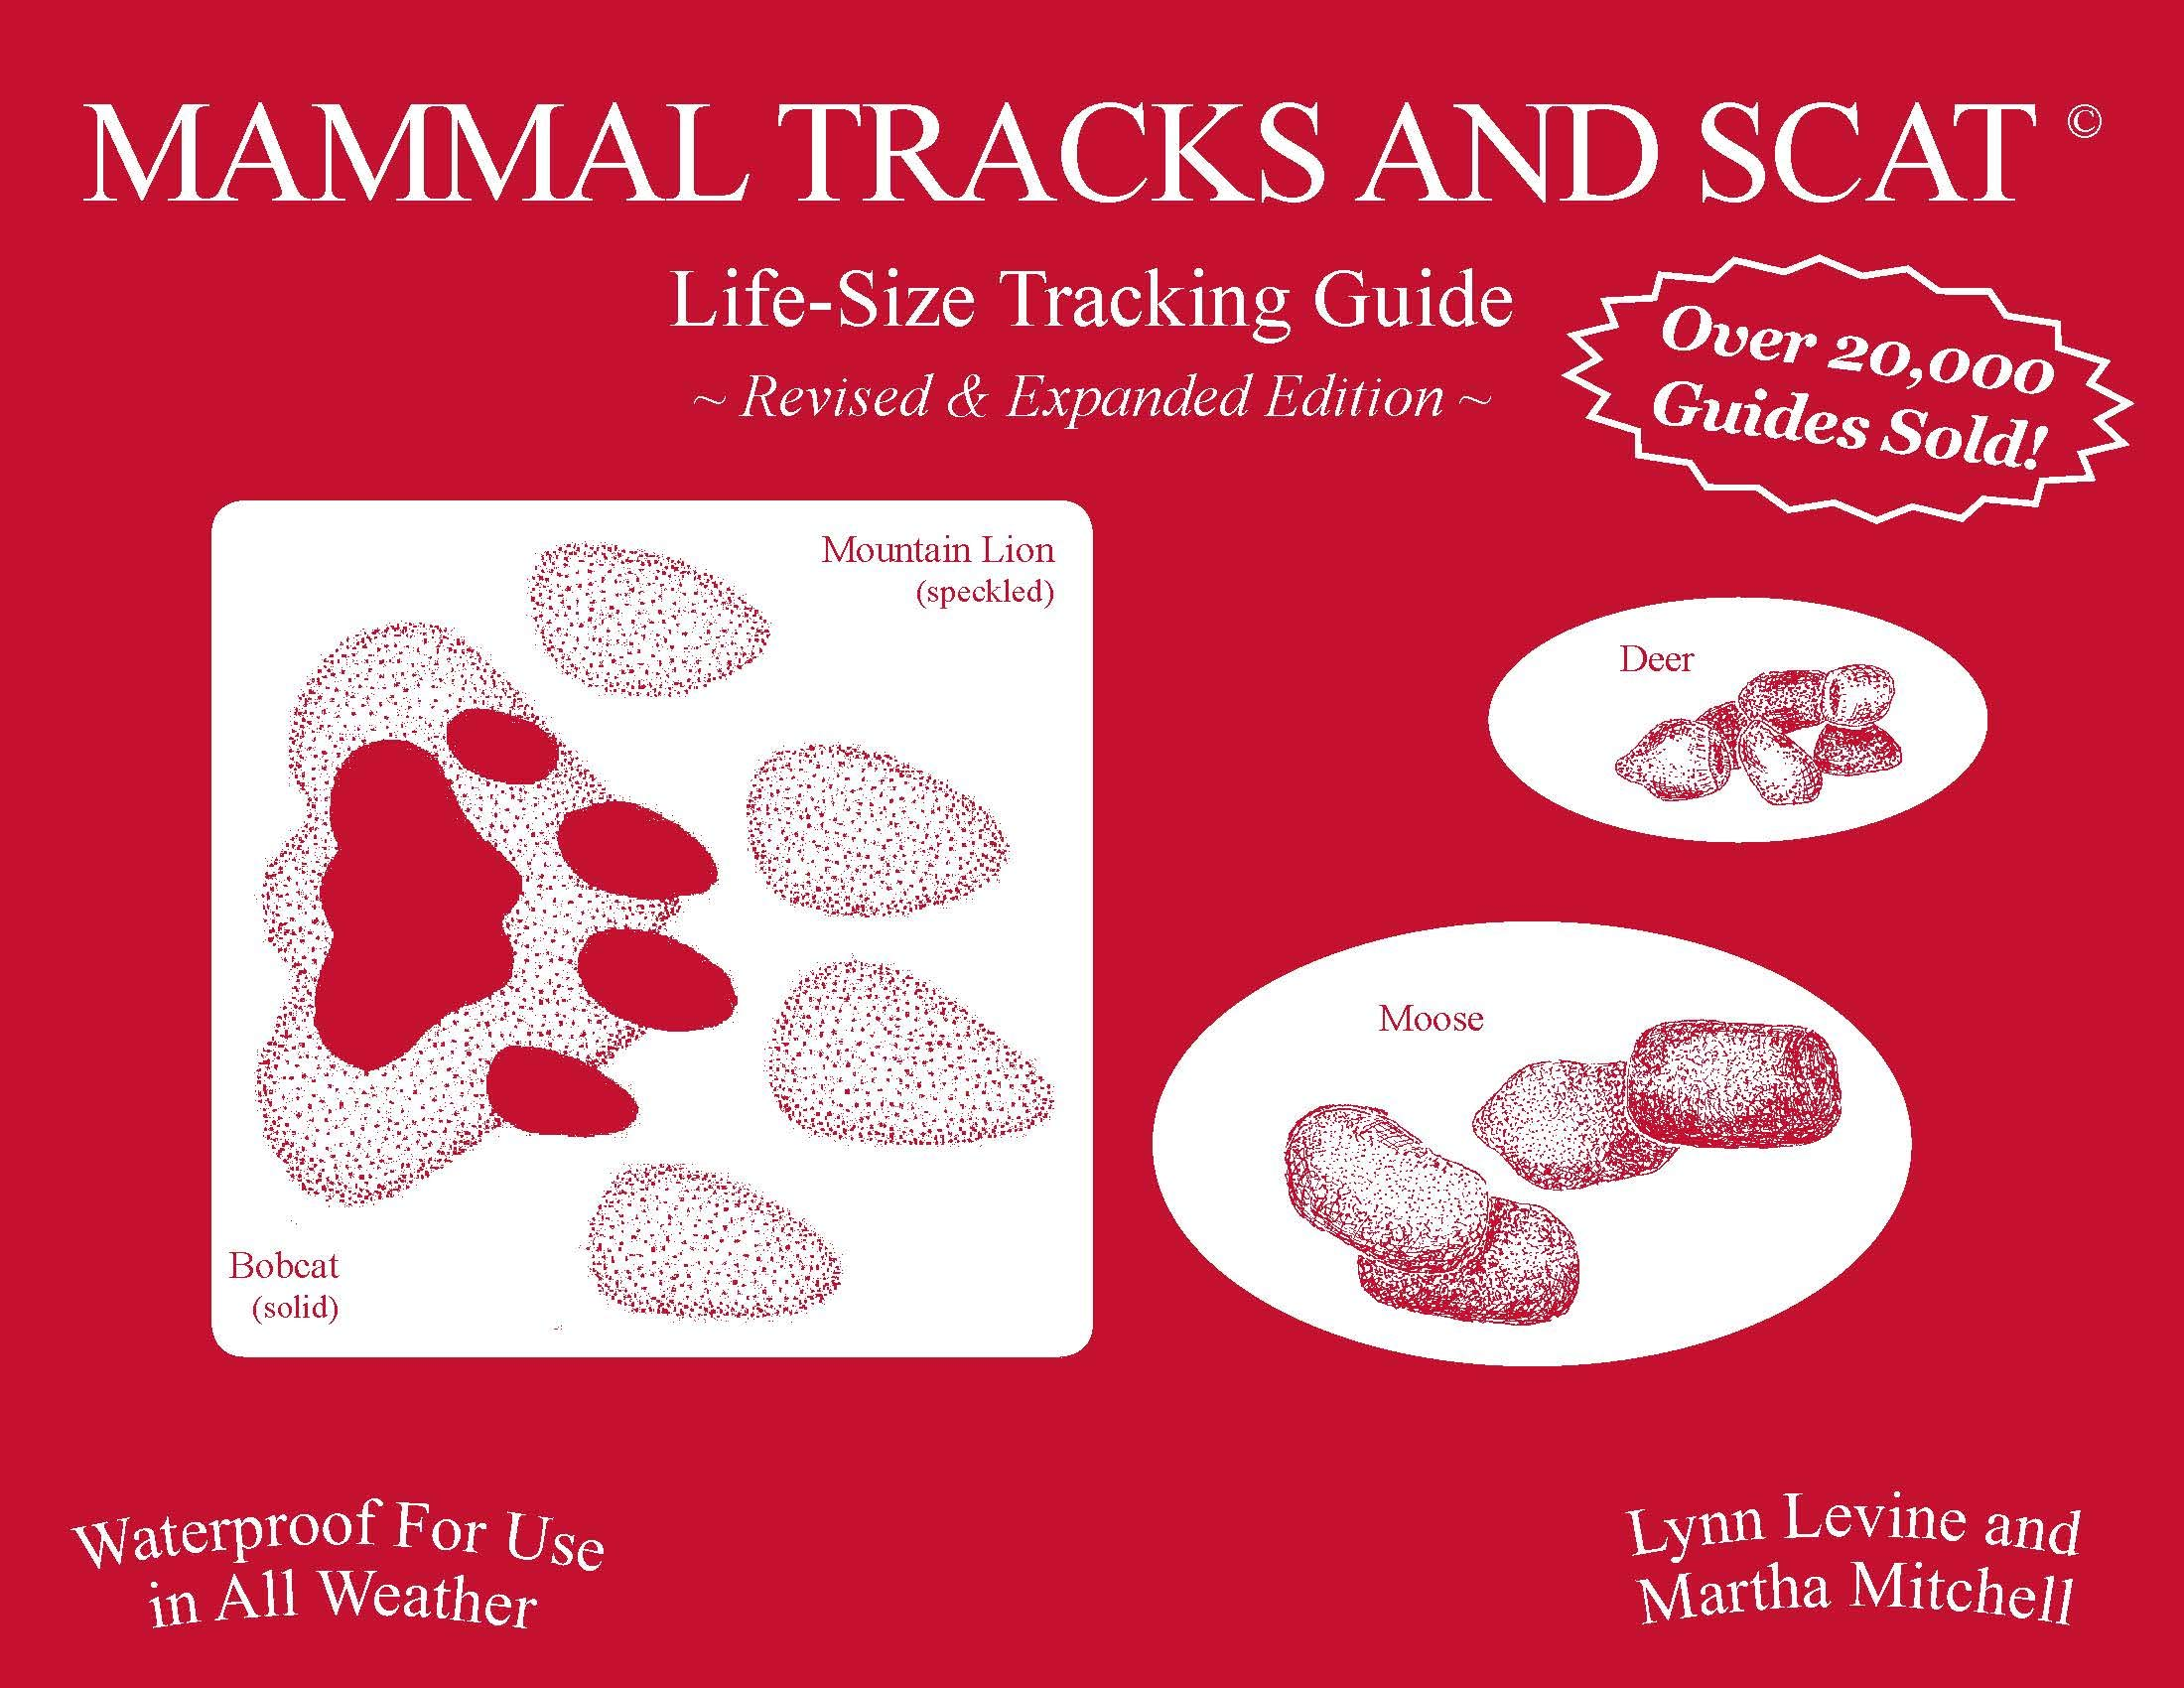 Animal Tracks and Scat book cover.